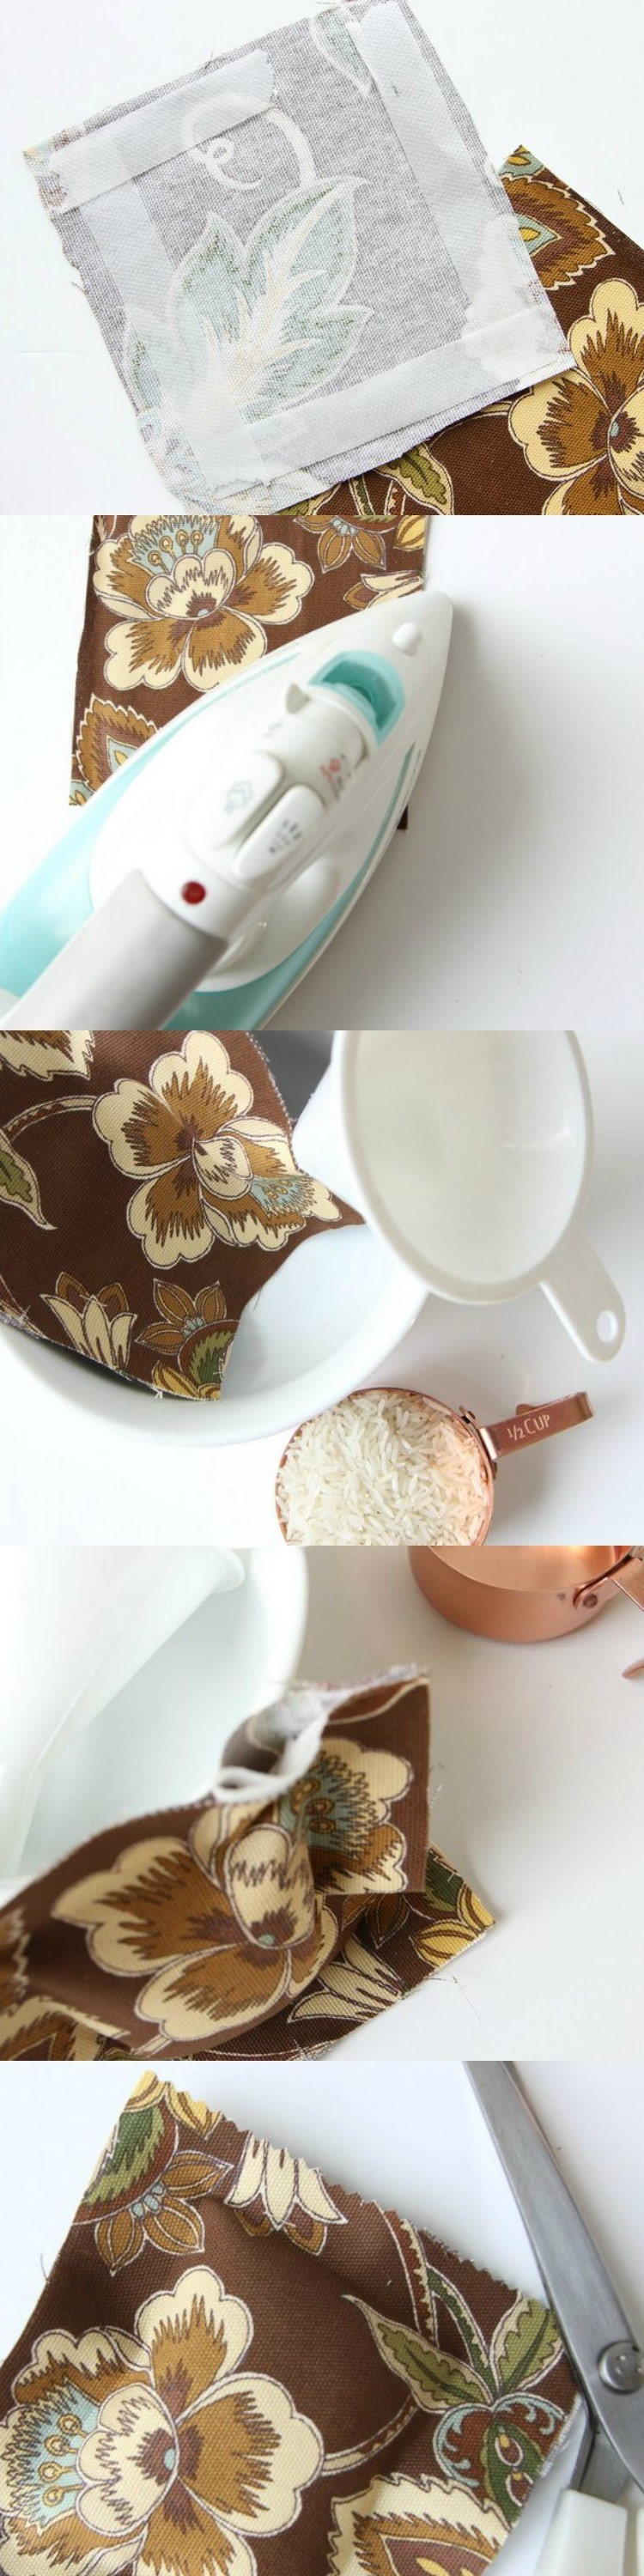 DIY No-Sew Hand Warmers Tutorial from MomAdvice.com